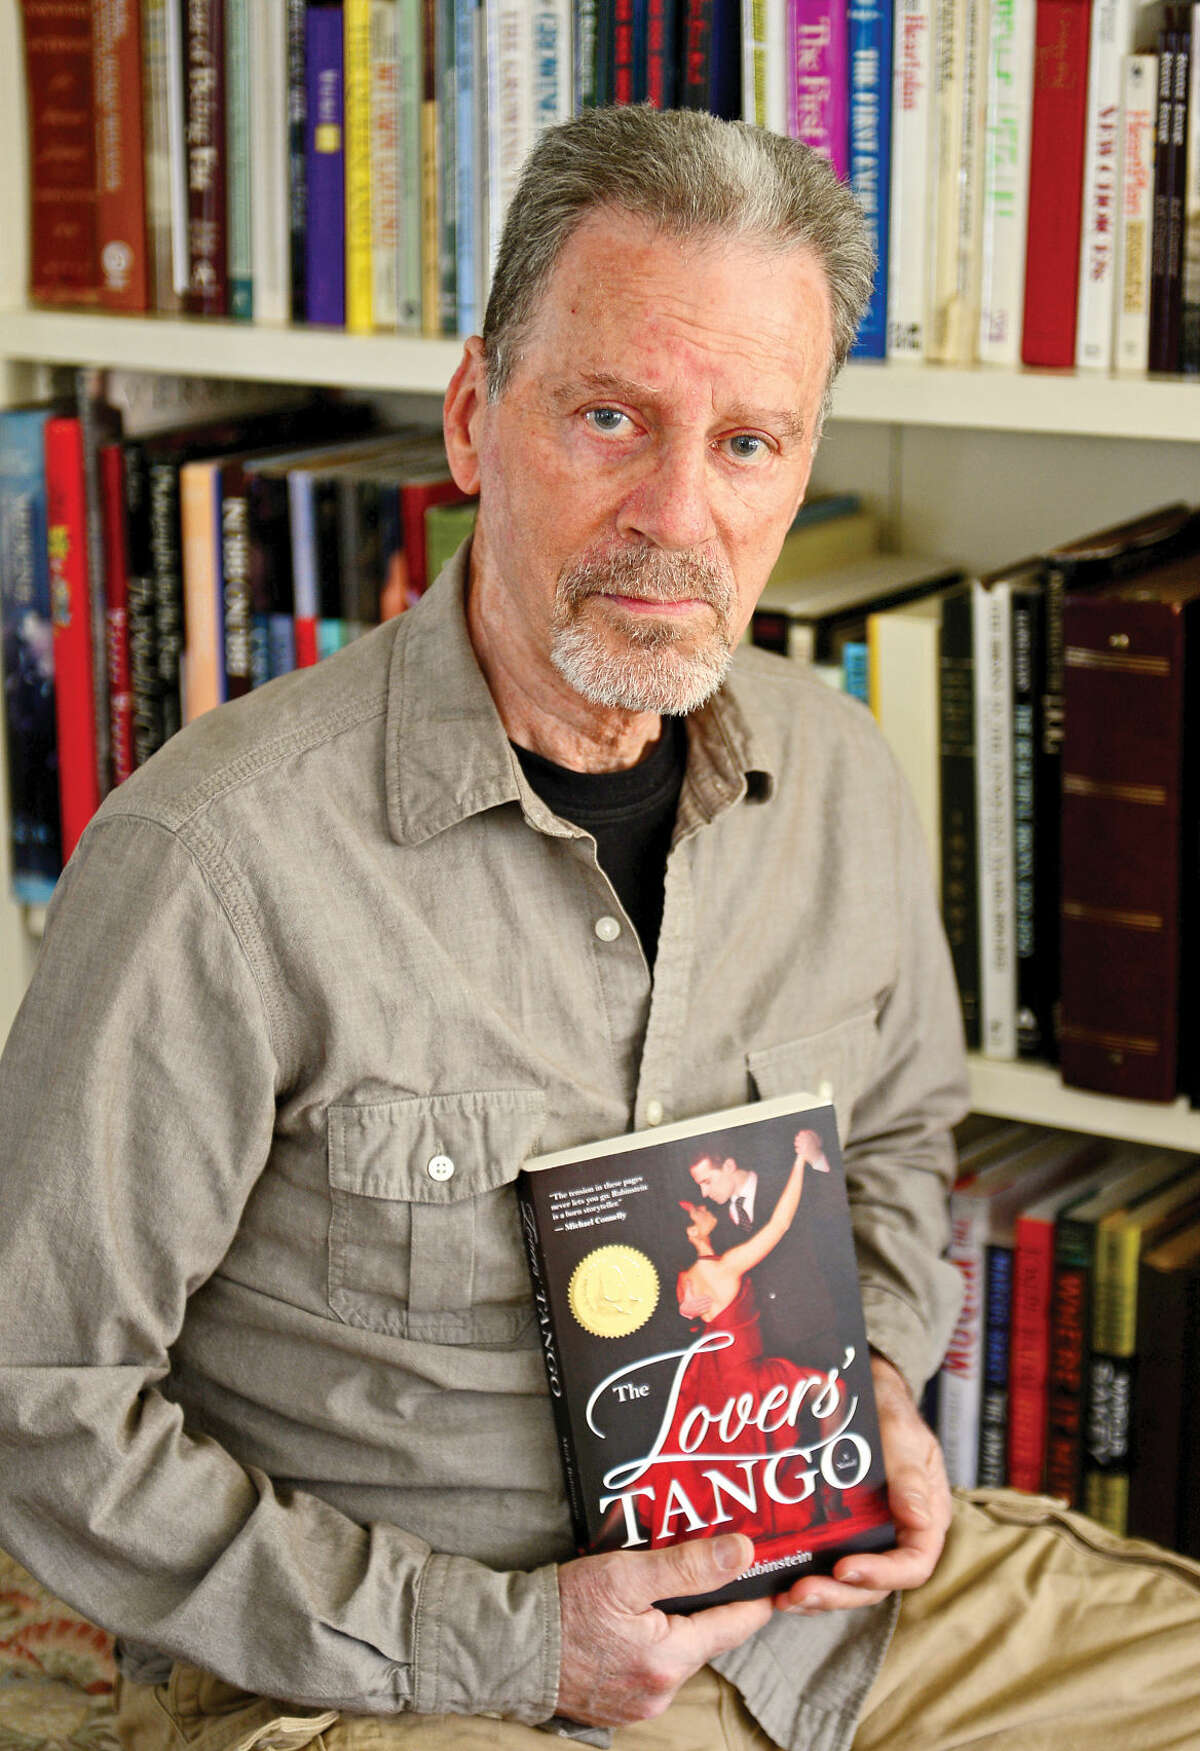 """Author Mark Rubinstein in his Wilton home with his latest book, """"The Lover's Tango,"""" Thursday, April 21, 2016. Rubinstein abandoned his psychiatric career four years ago so that he could pursue his dream of writing professionally."""